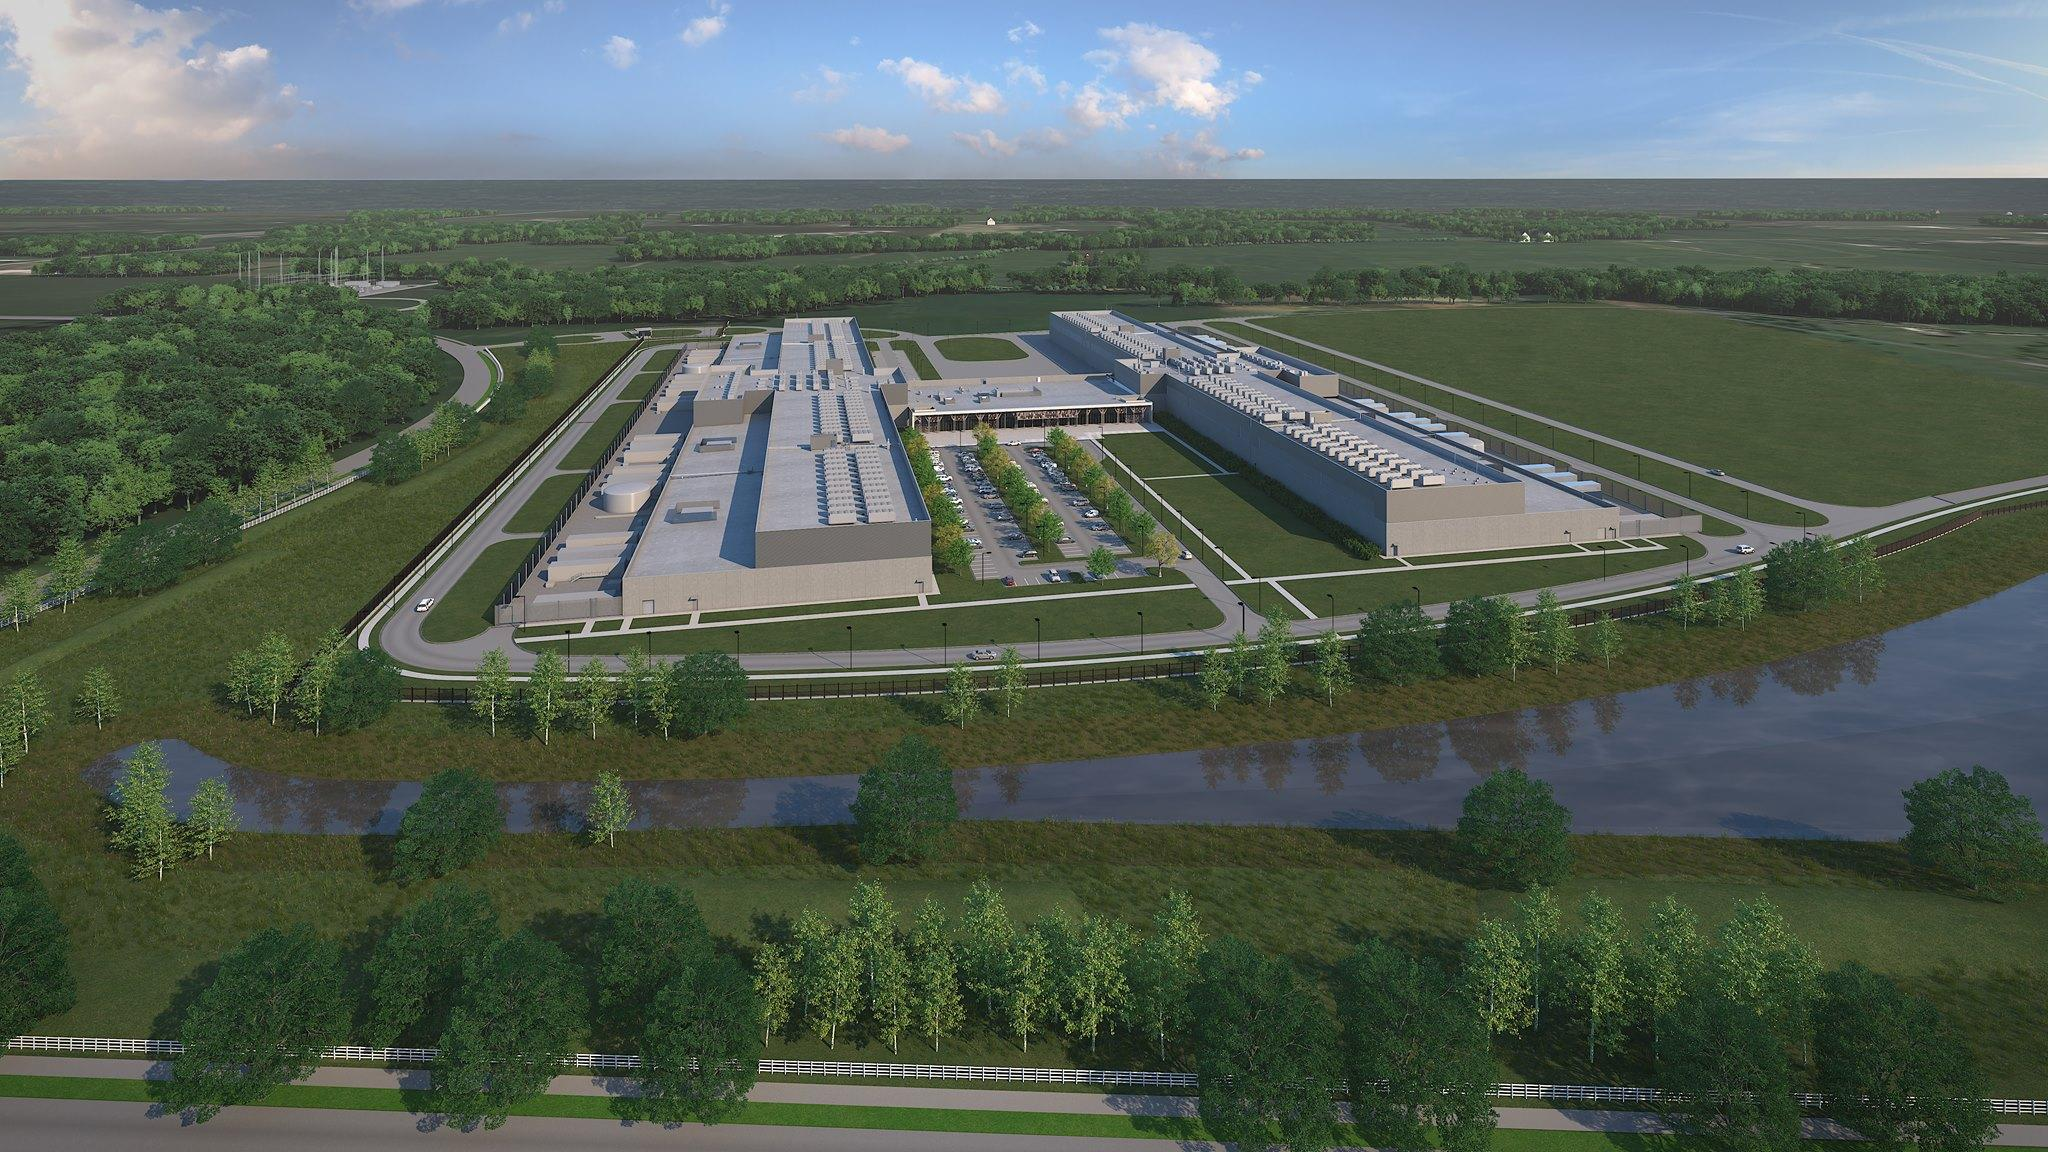 Facebook Announces Its New Data Center in Ohio Will Open in 2019